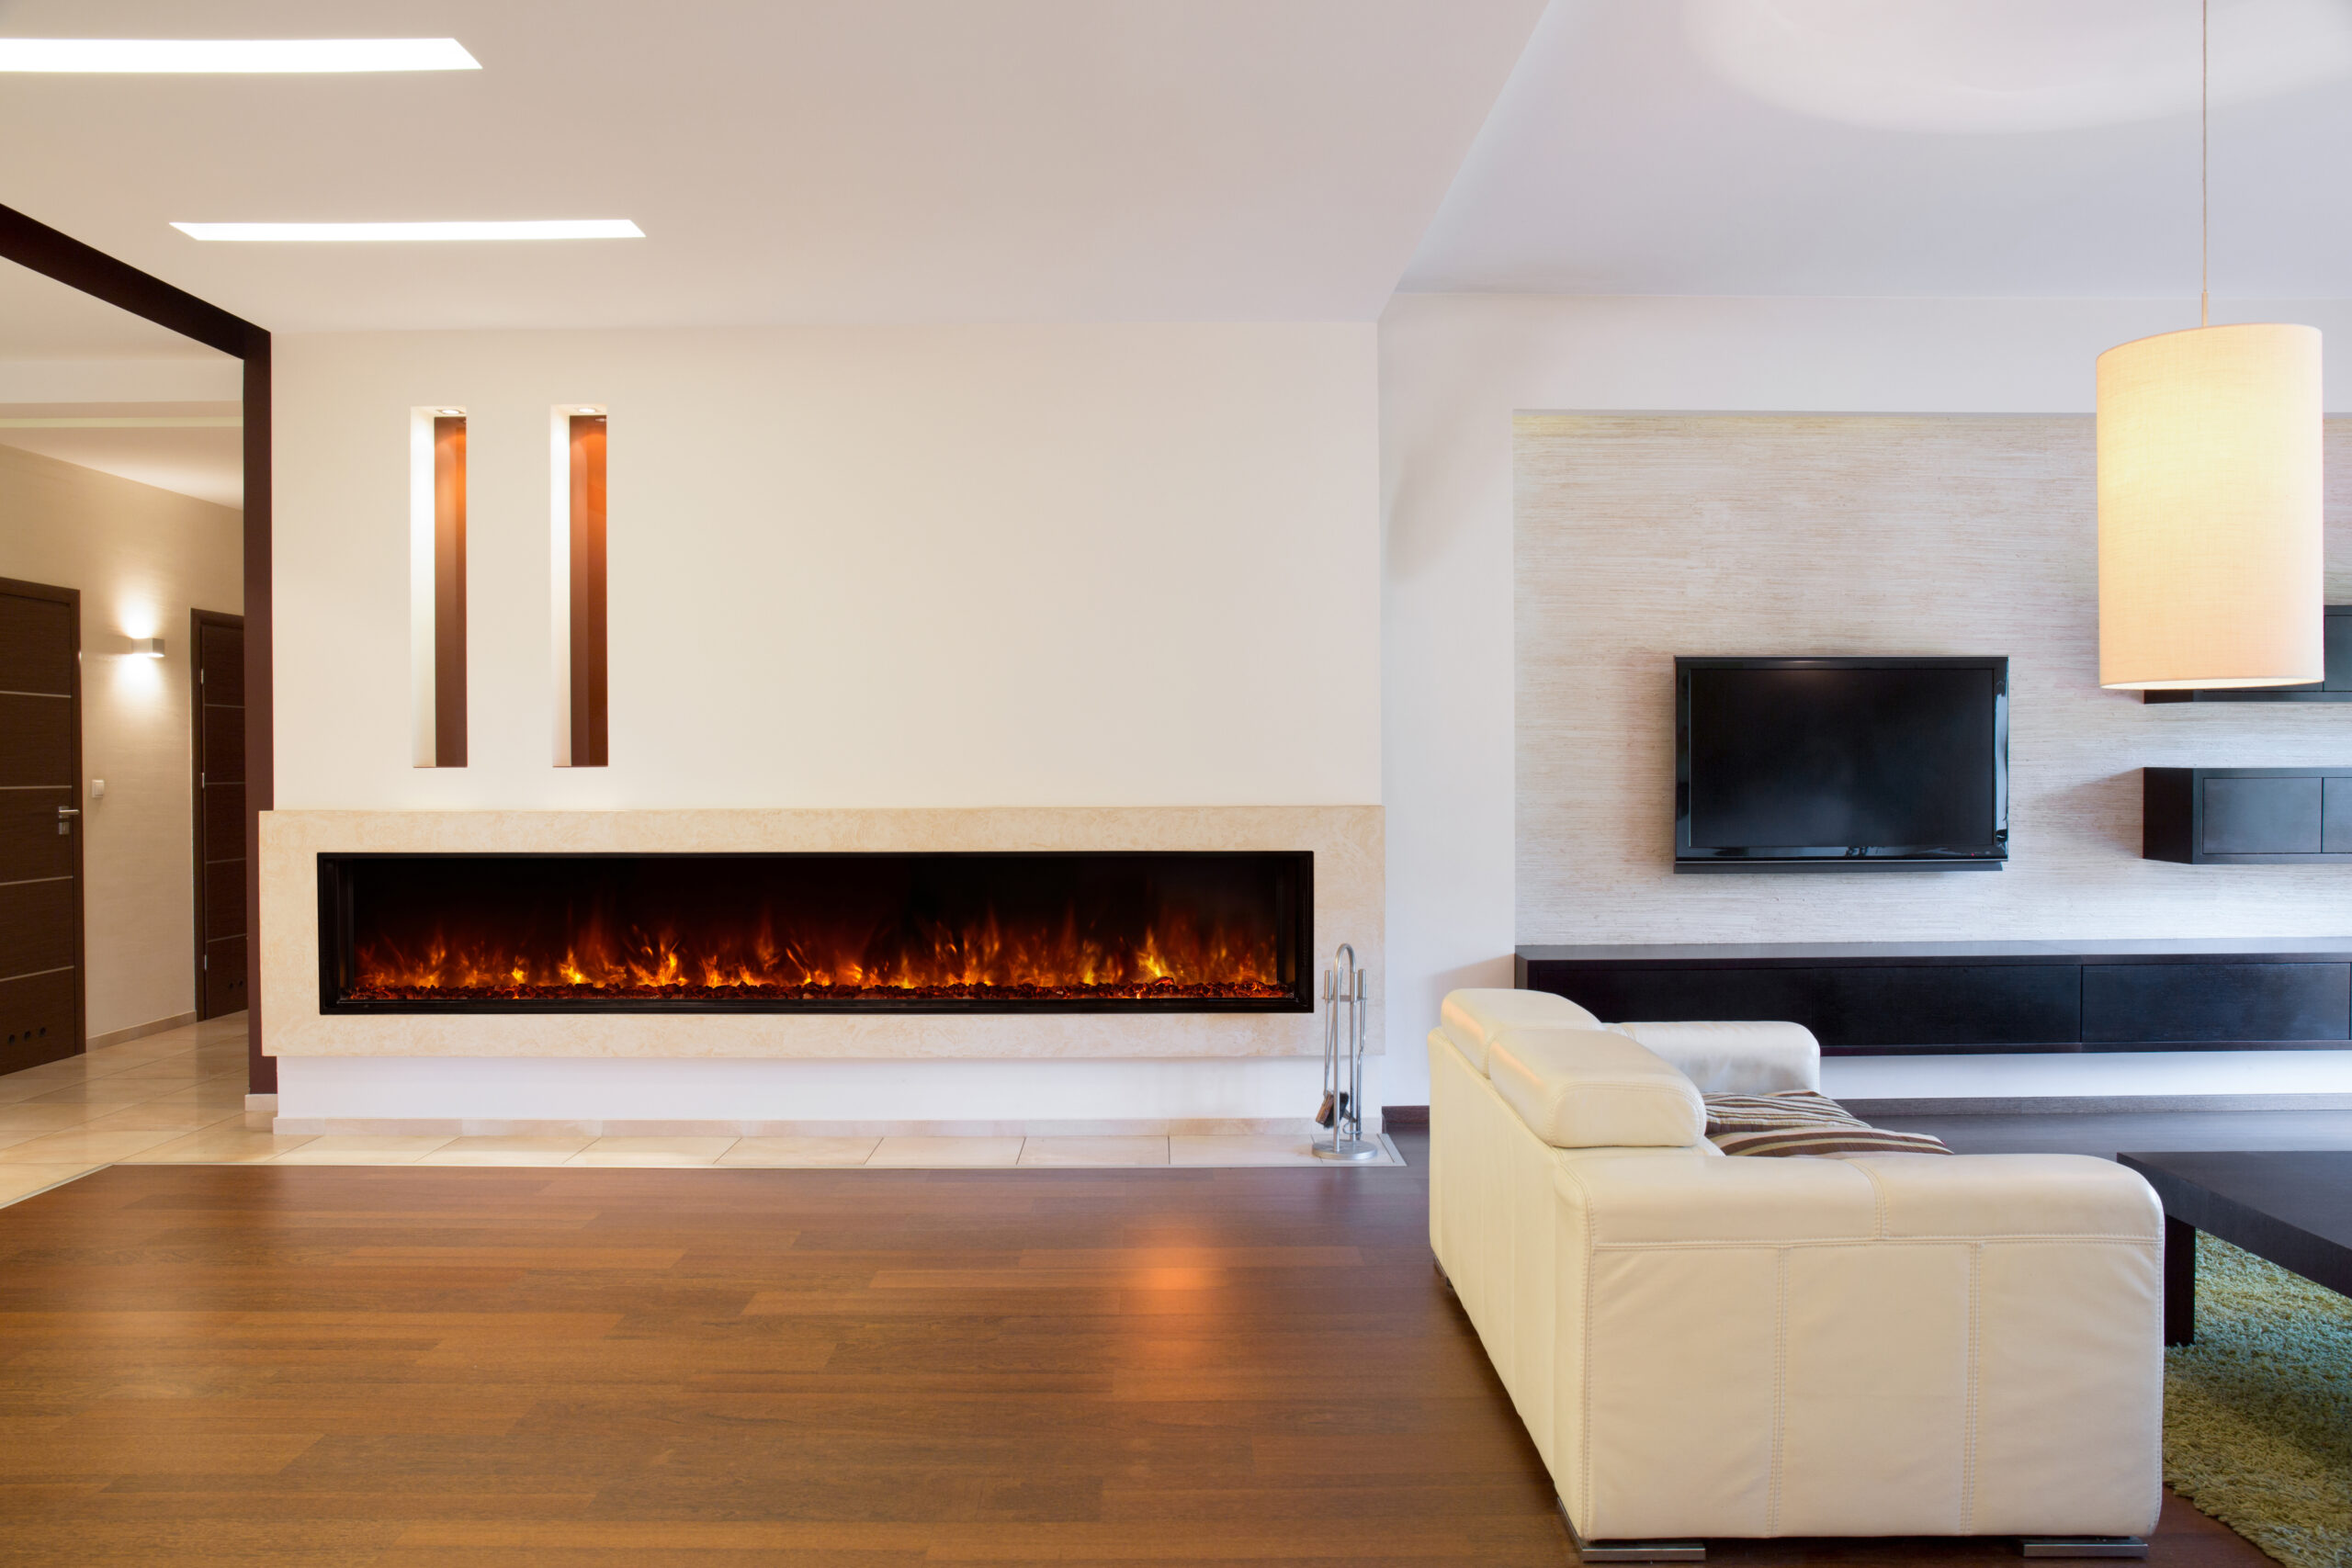 Electric Fireplace Extra Large Most Realistic Fire Look In The Market